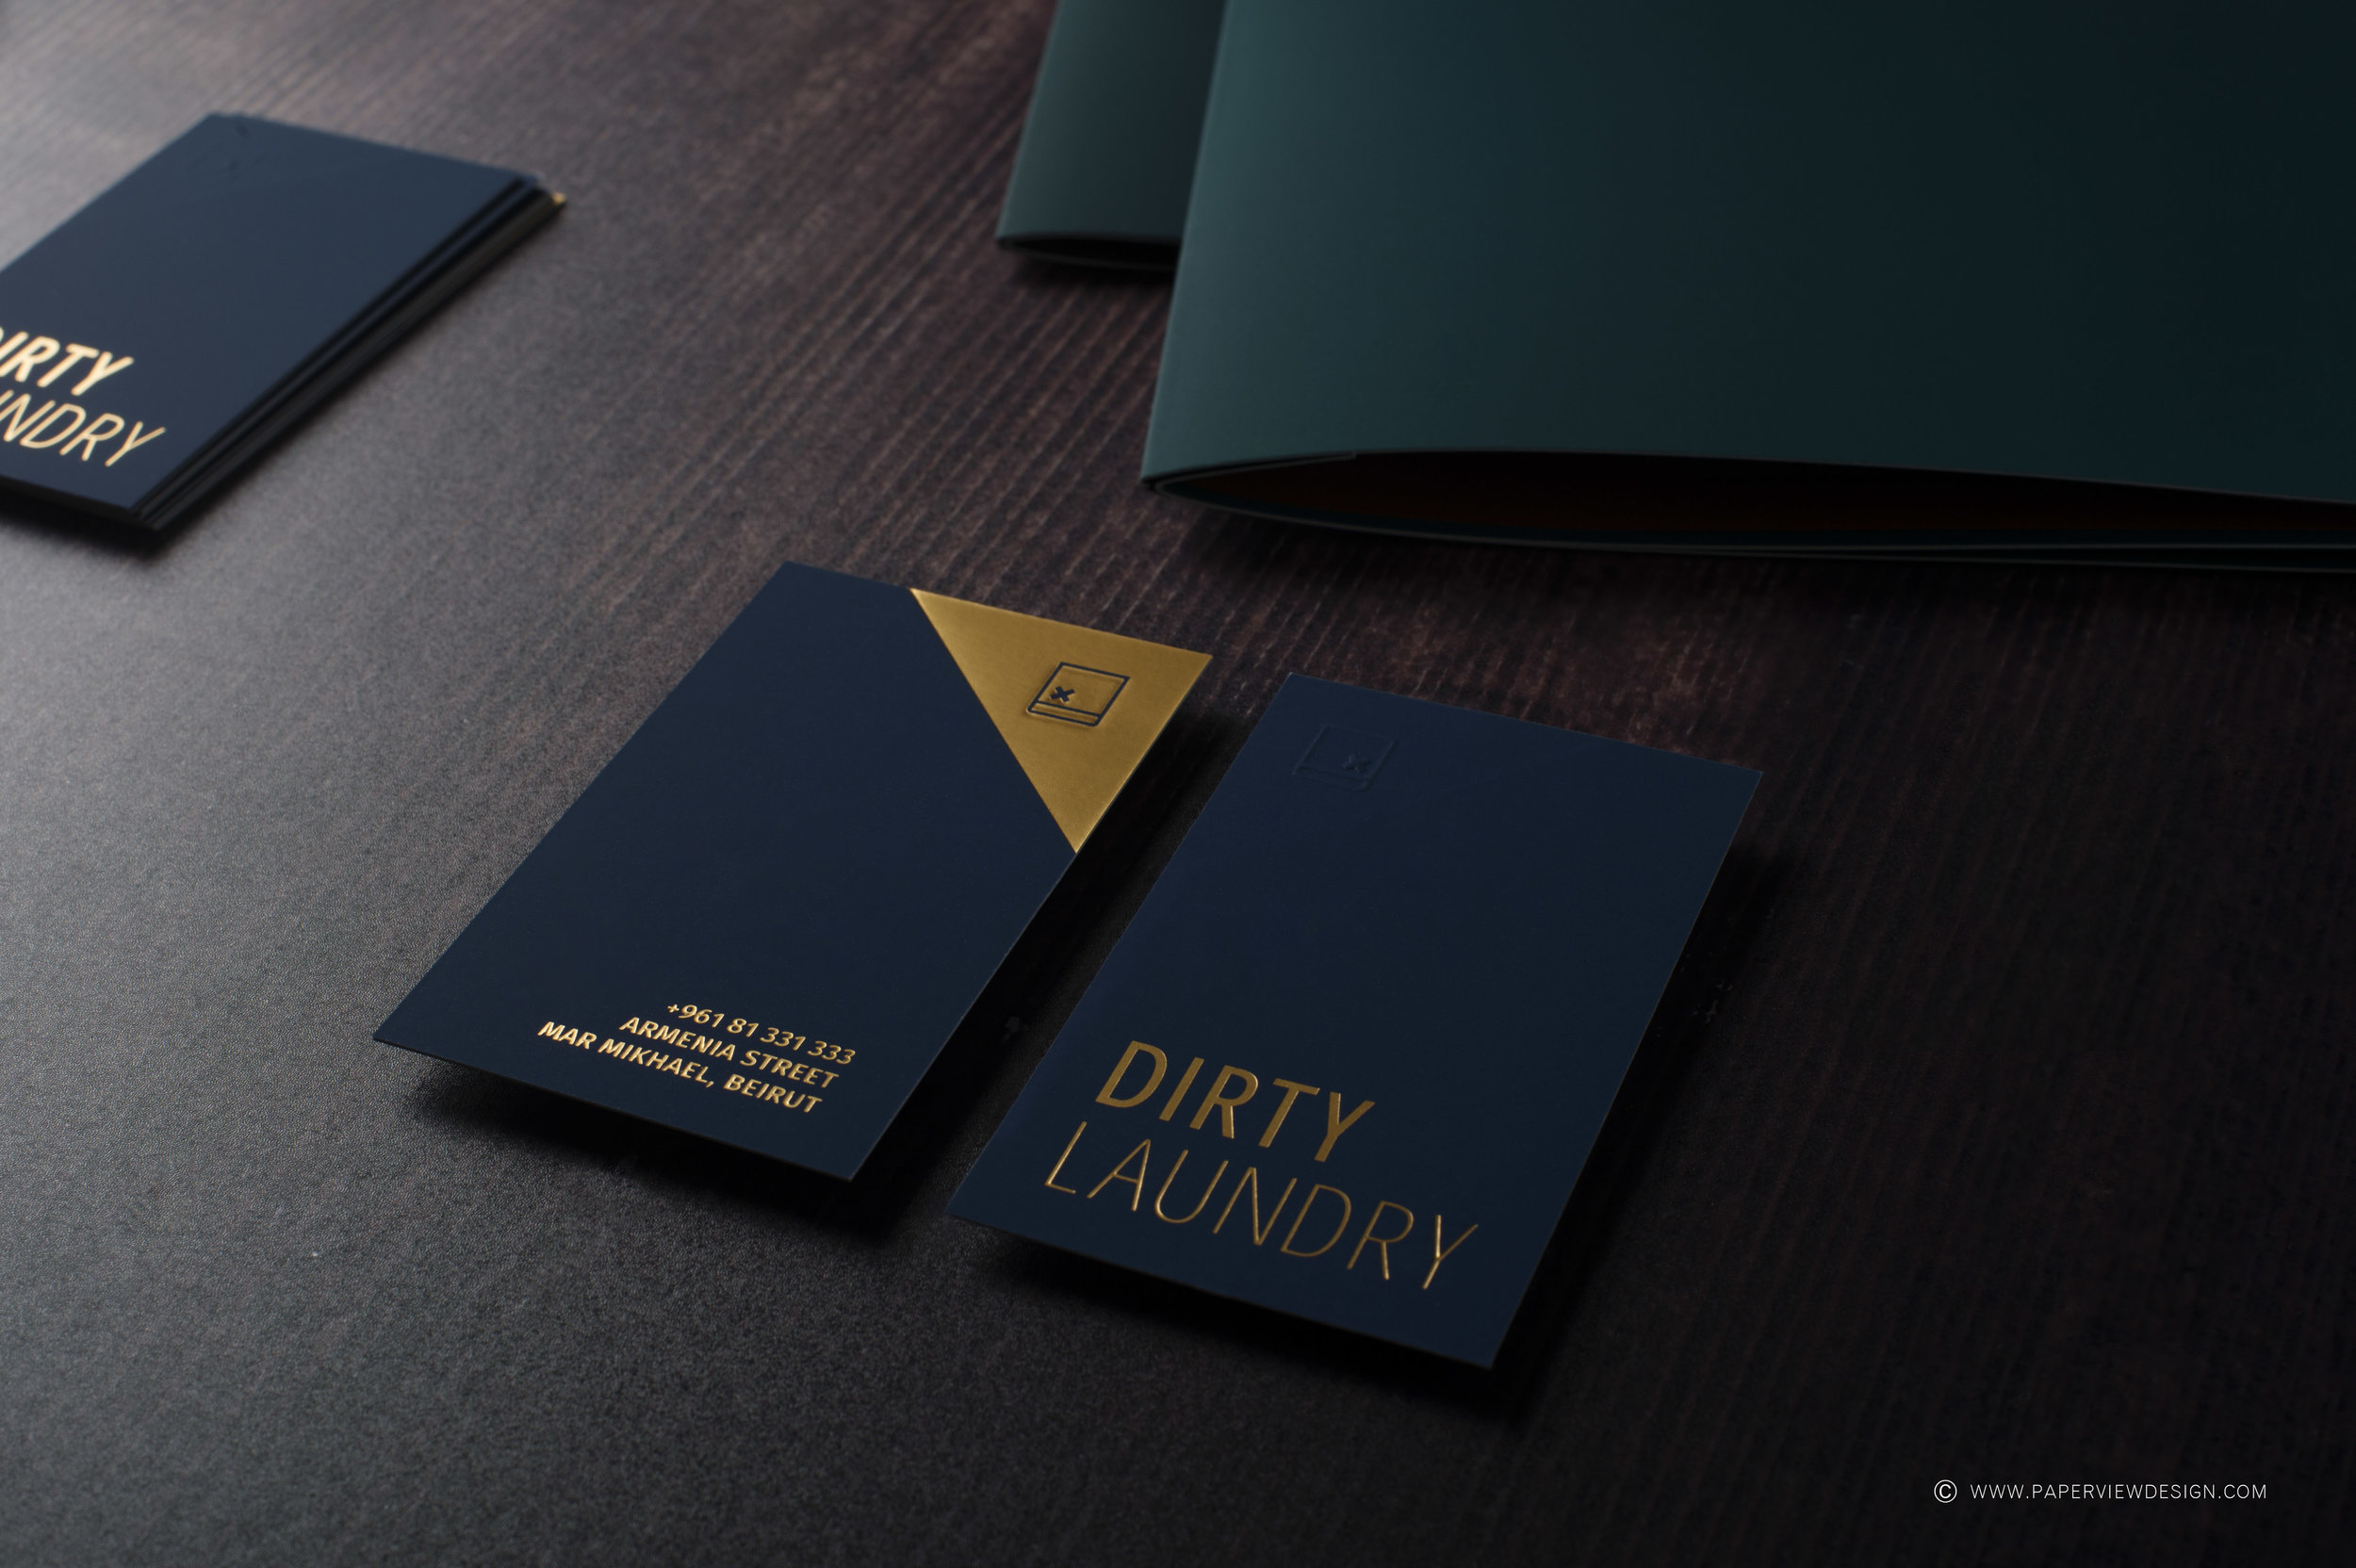 Dirty-Laundry-Branding-Business-Cards-Hot-Foil-Icon-Logo-Debossing-Embossing-Effects-Printing